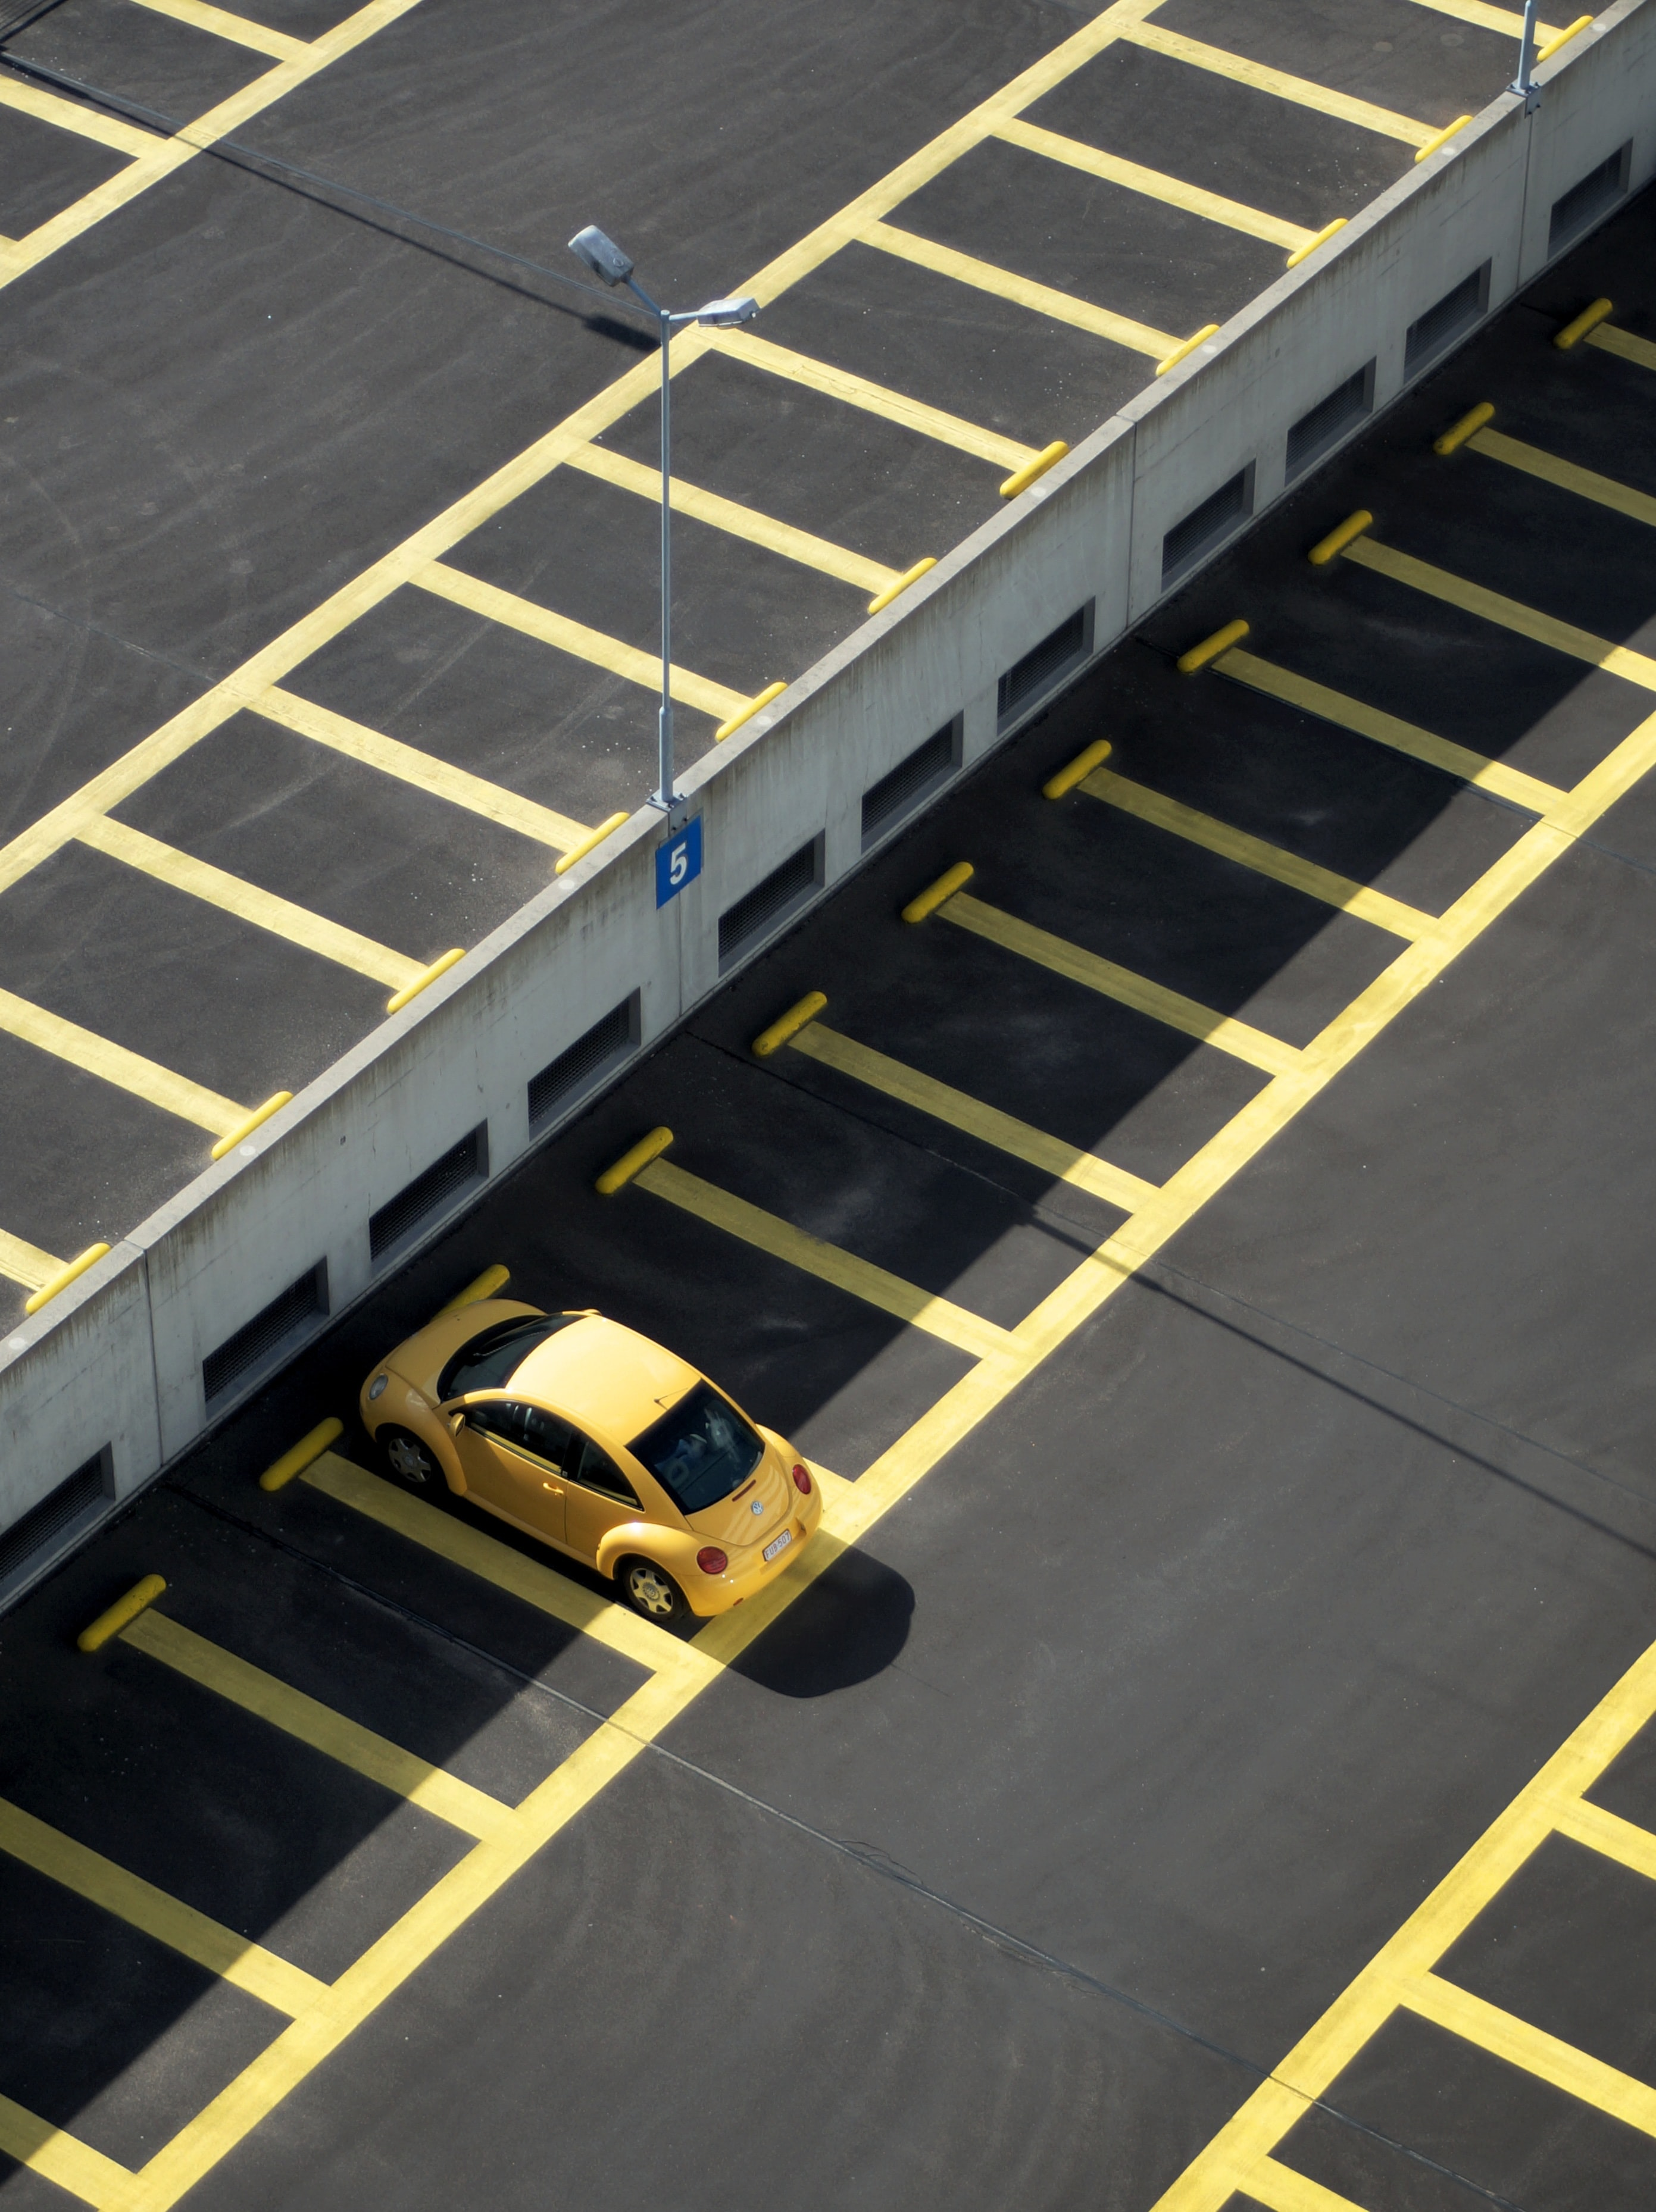 Drone shot of a solitary yellow Volkswagen Beetle in a parking garage with yellow lines.